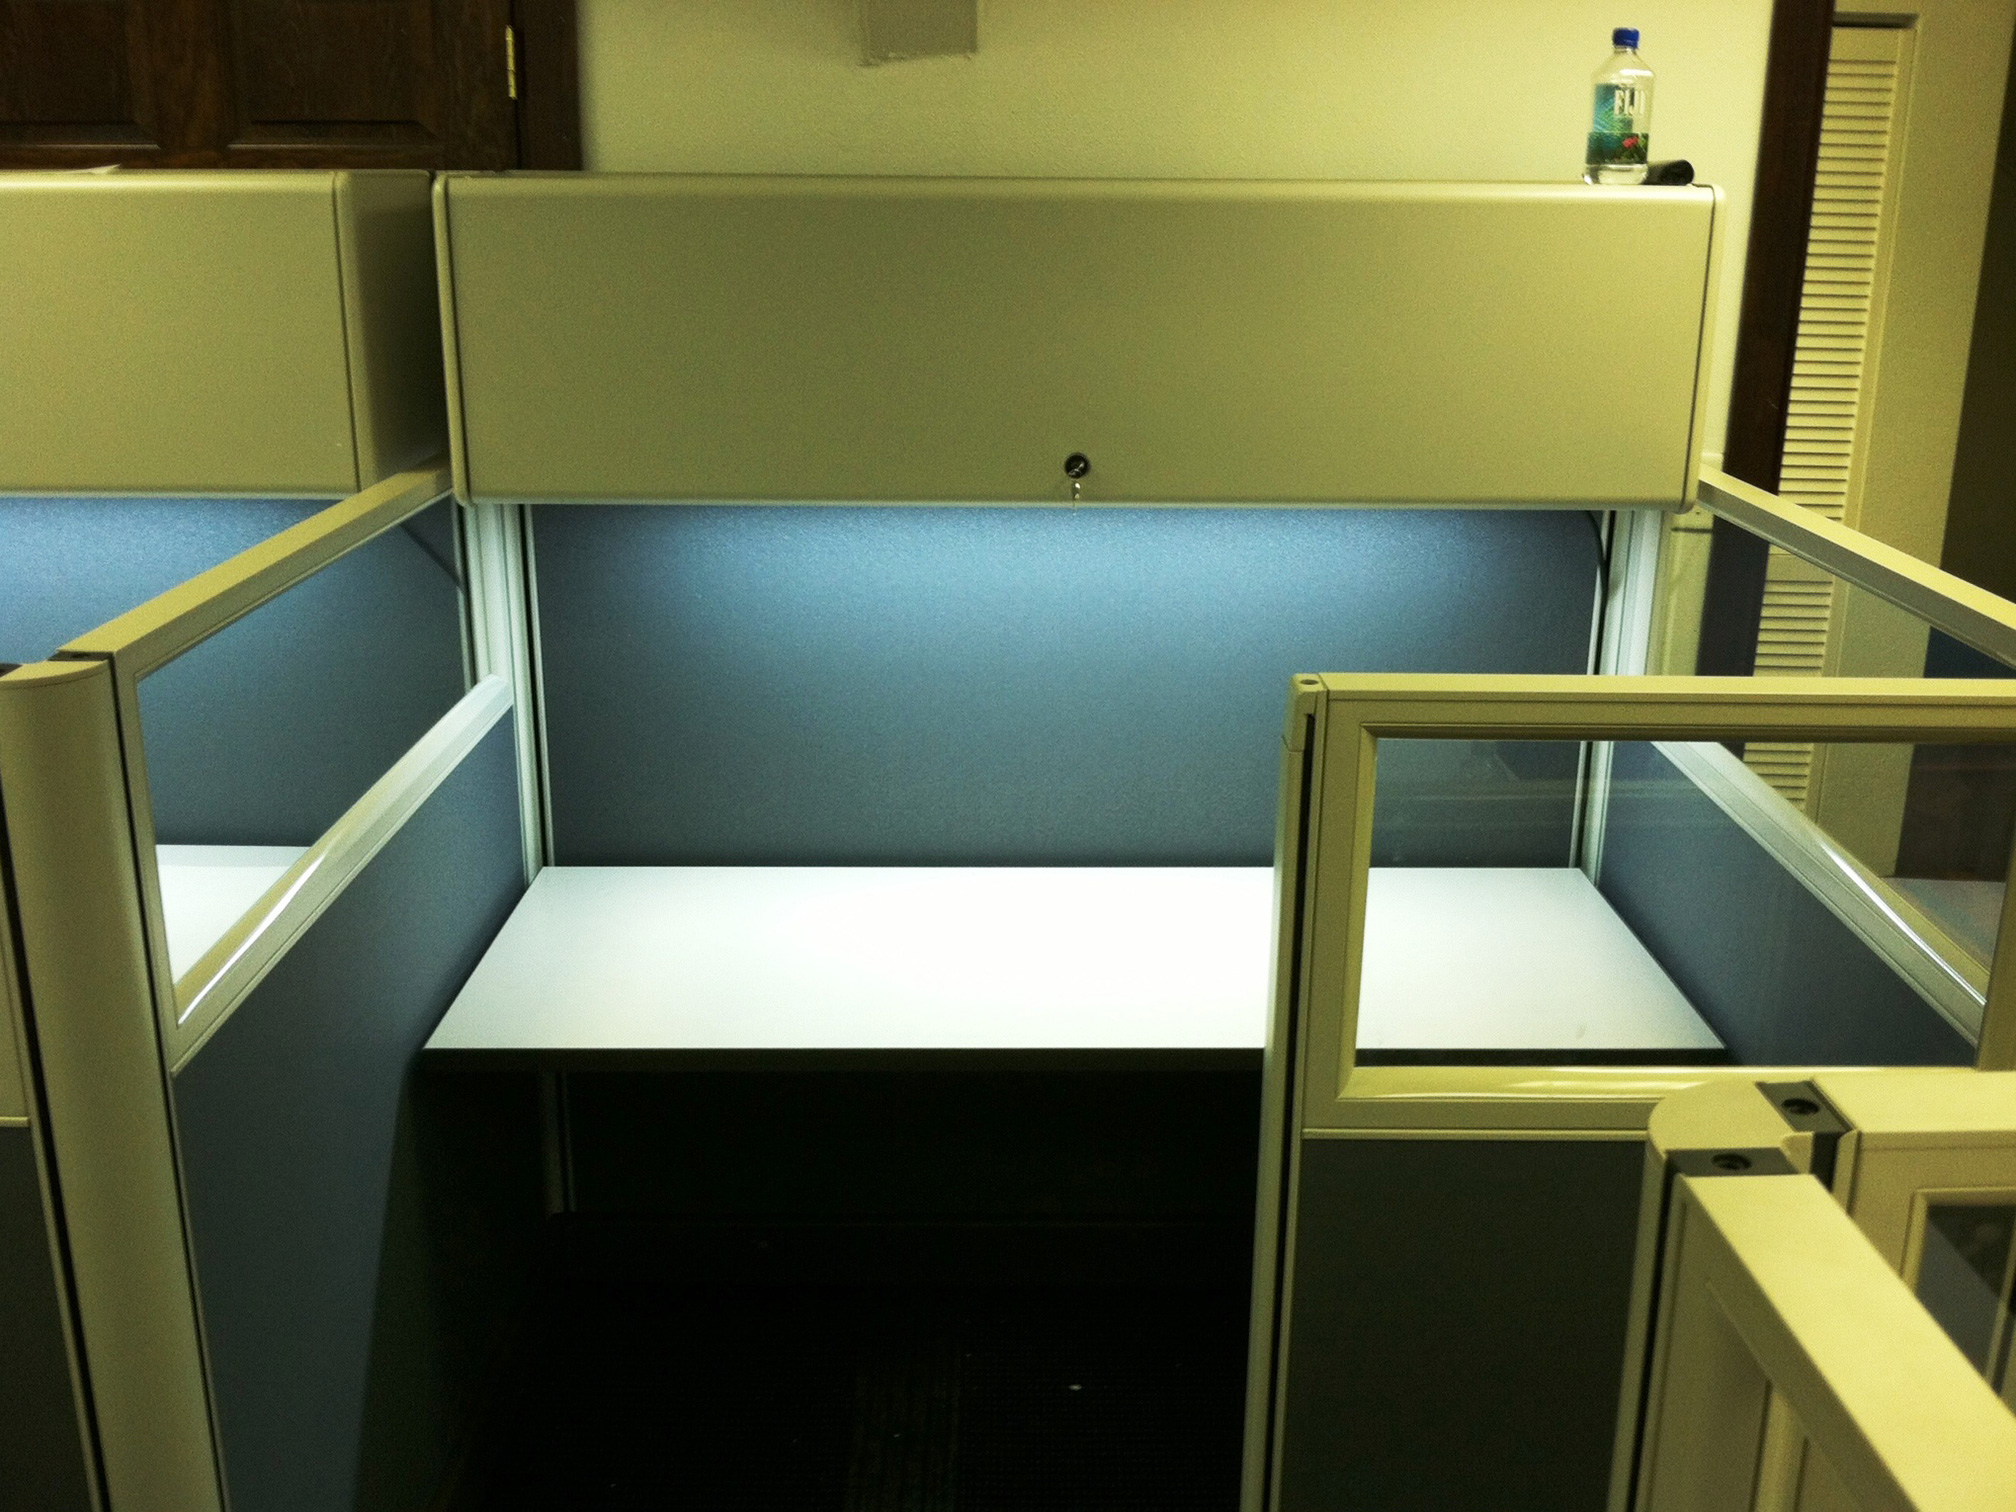 cubicles-with-lights-manasota-office-supplies-llc.jpg